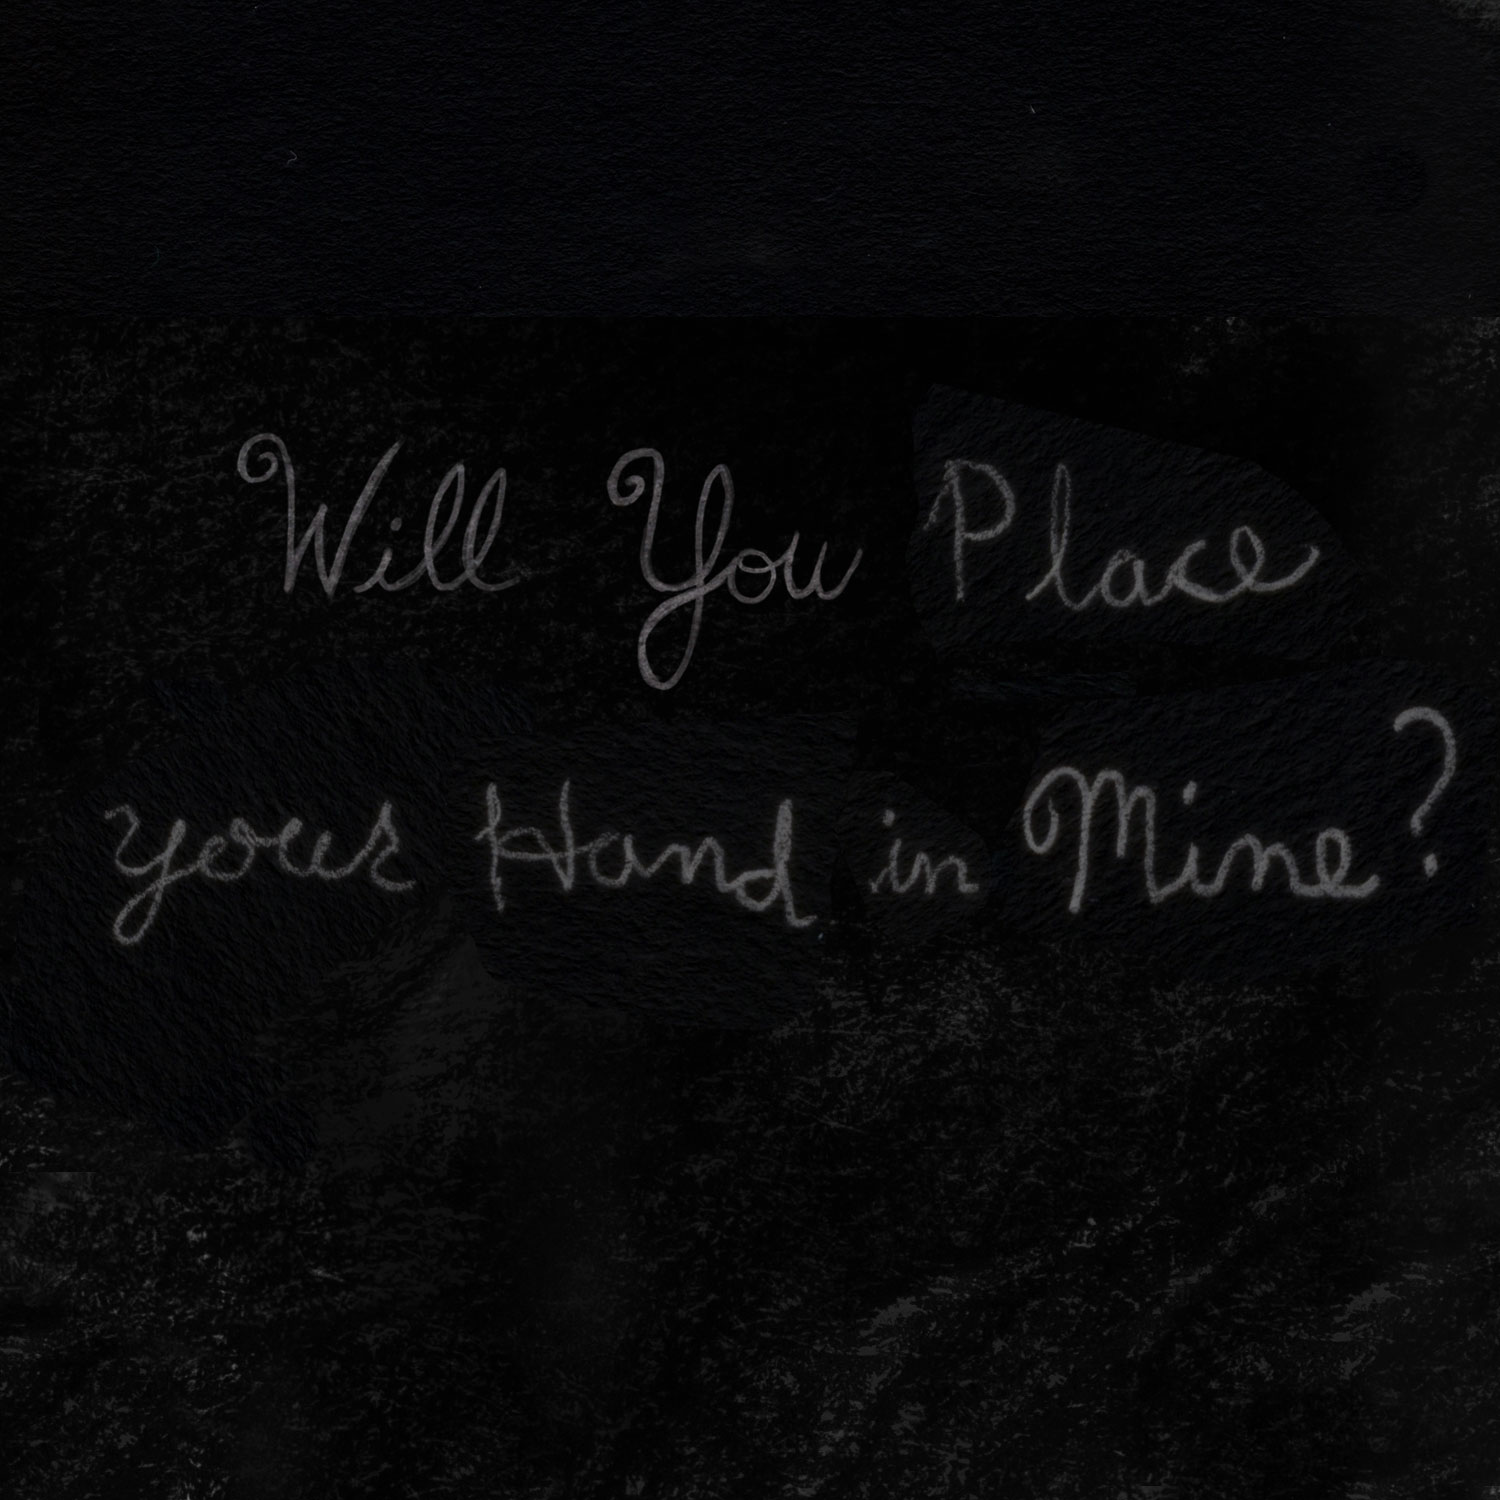 Will you place your hand in mine cursive writing